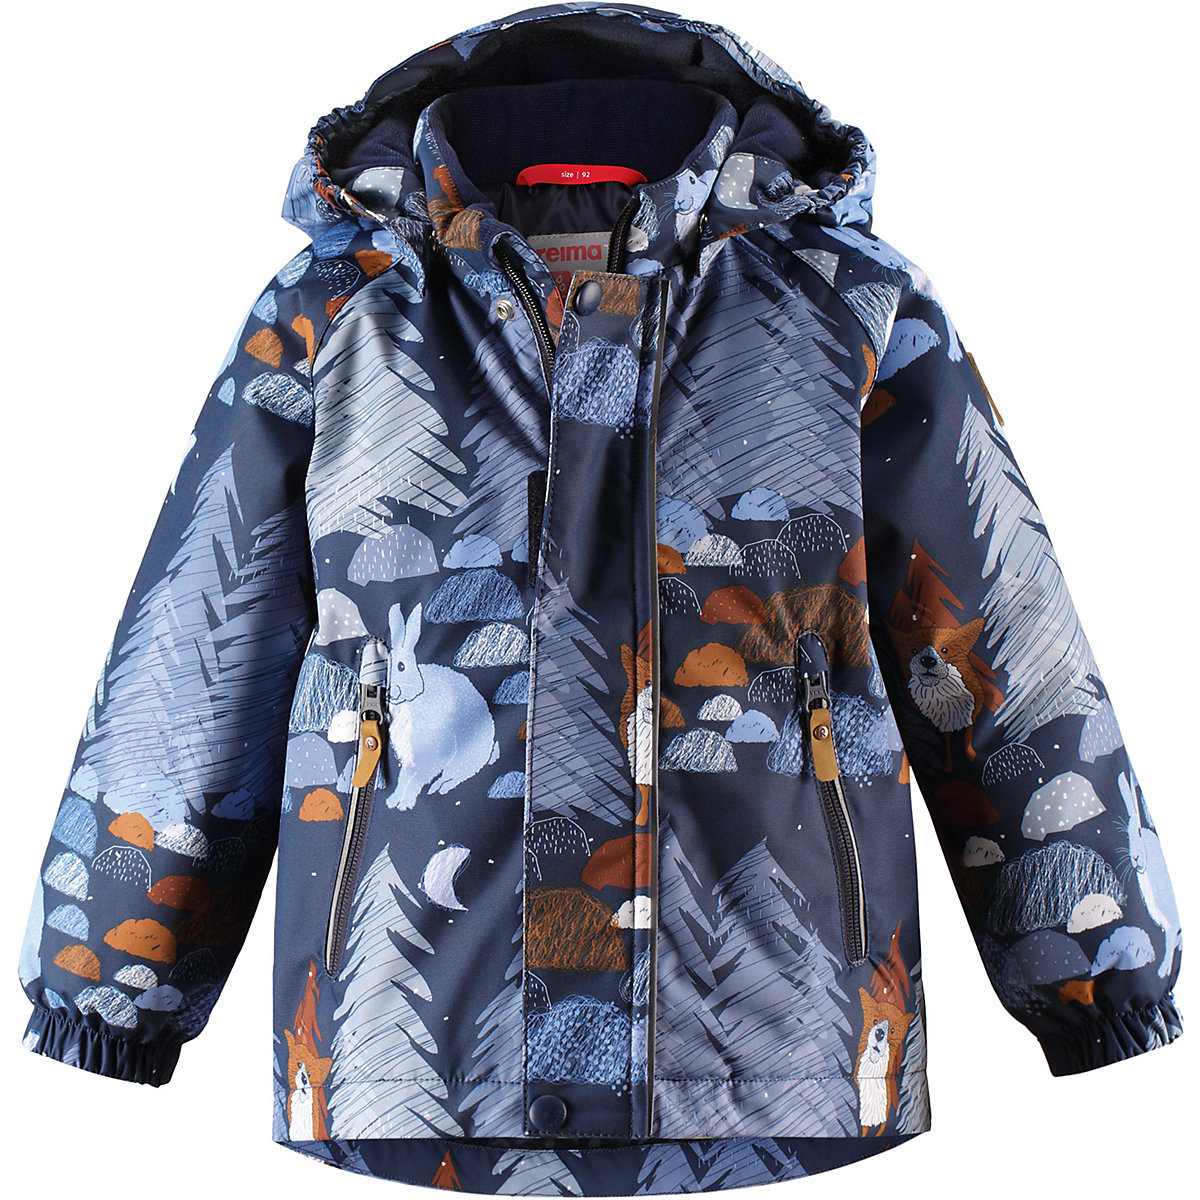 REIMA Jackets 8665397 for boys polyester winter  fur clothes boy reima jackets 8688821 for boys polyester winter fur clothes boy